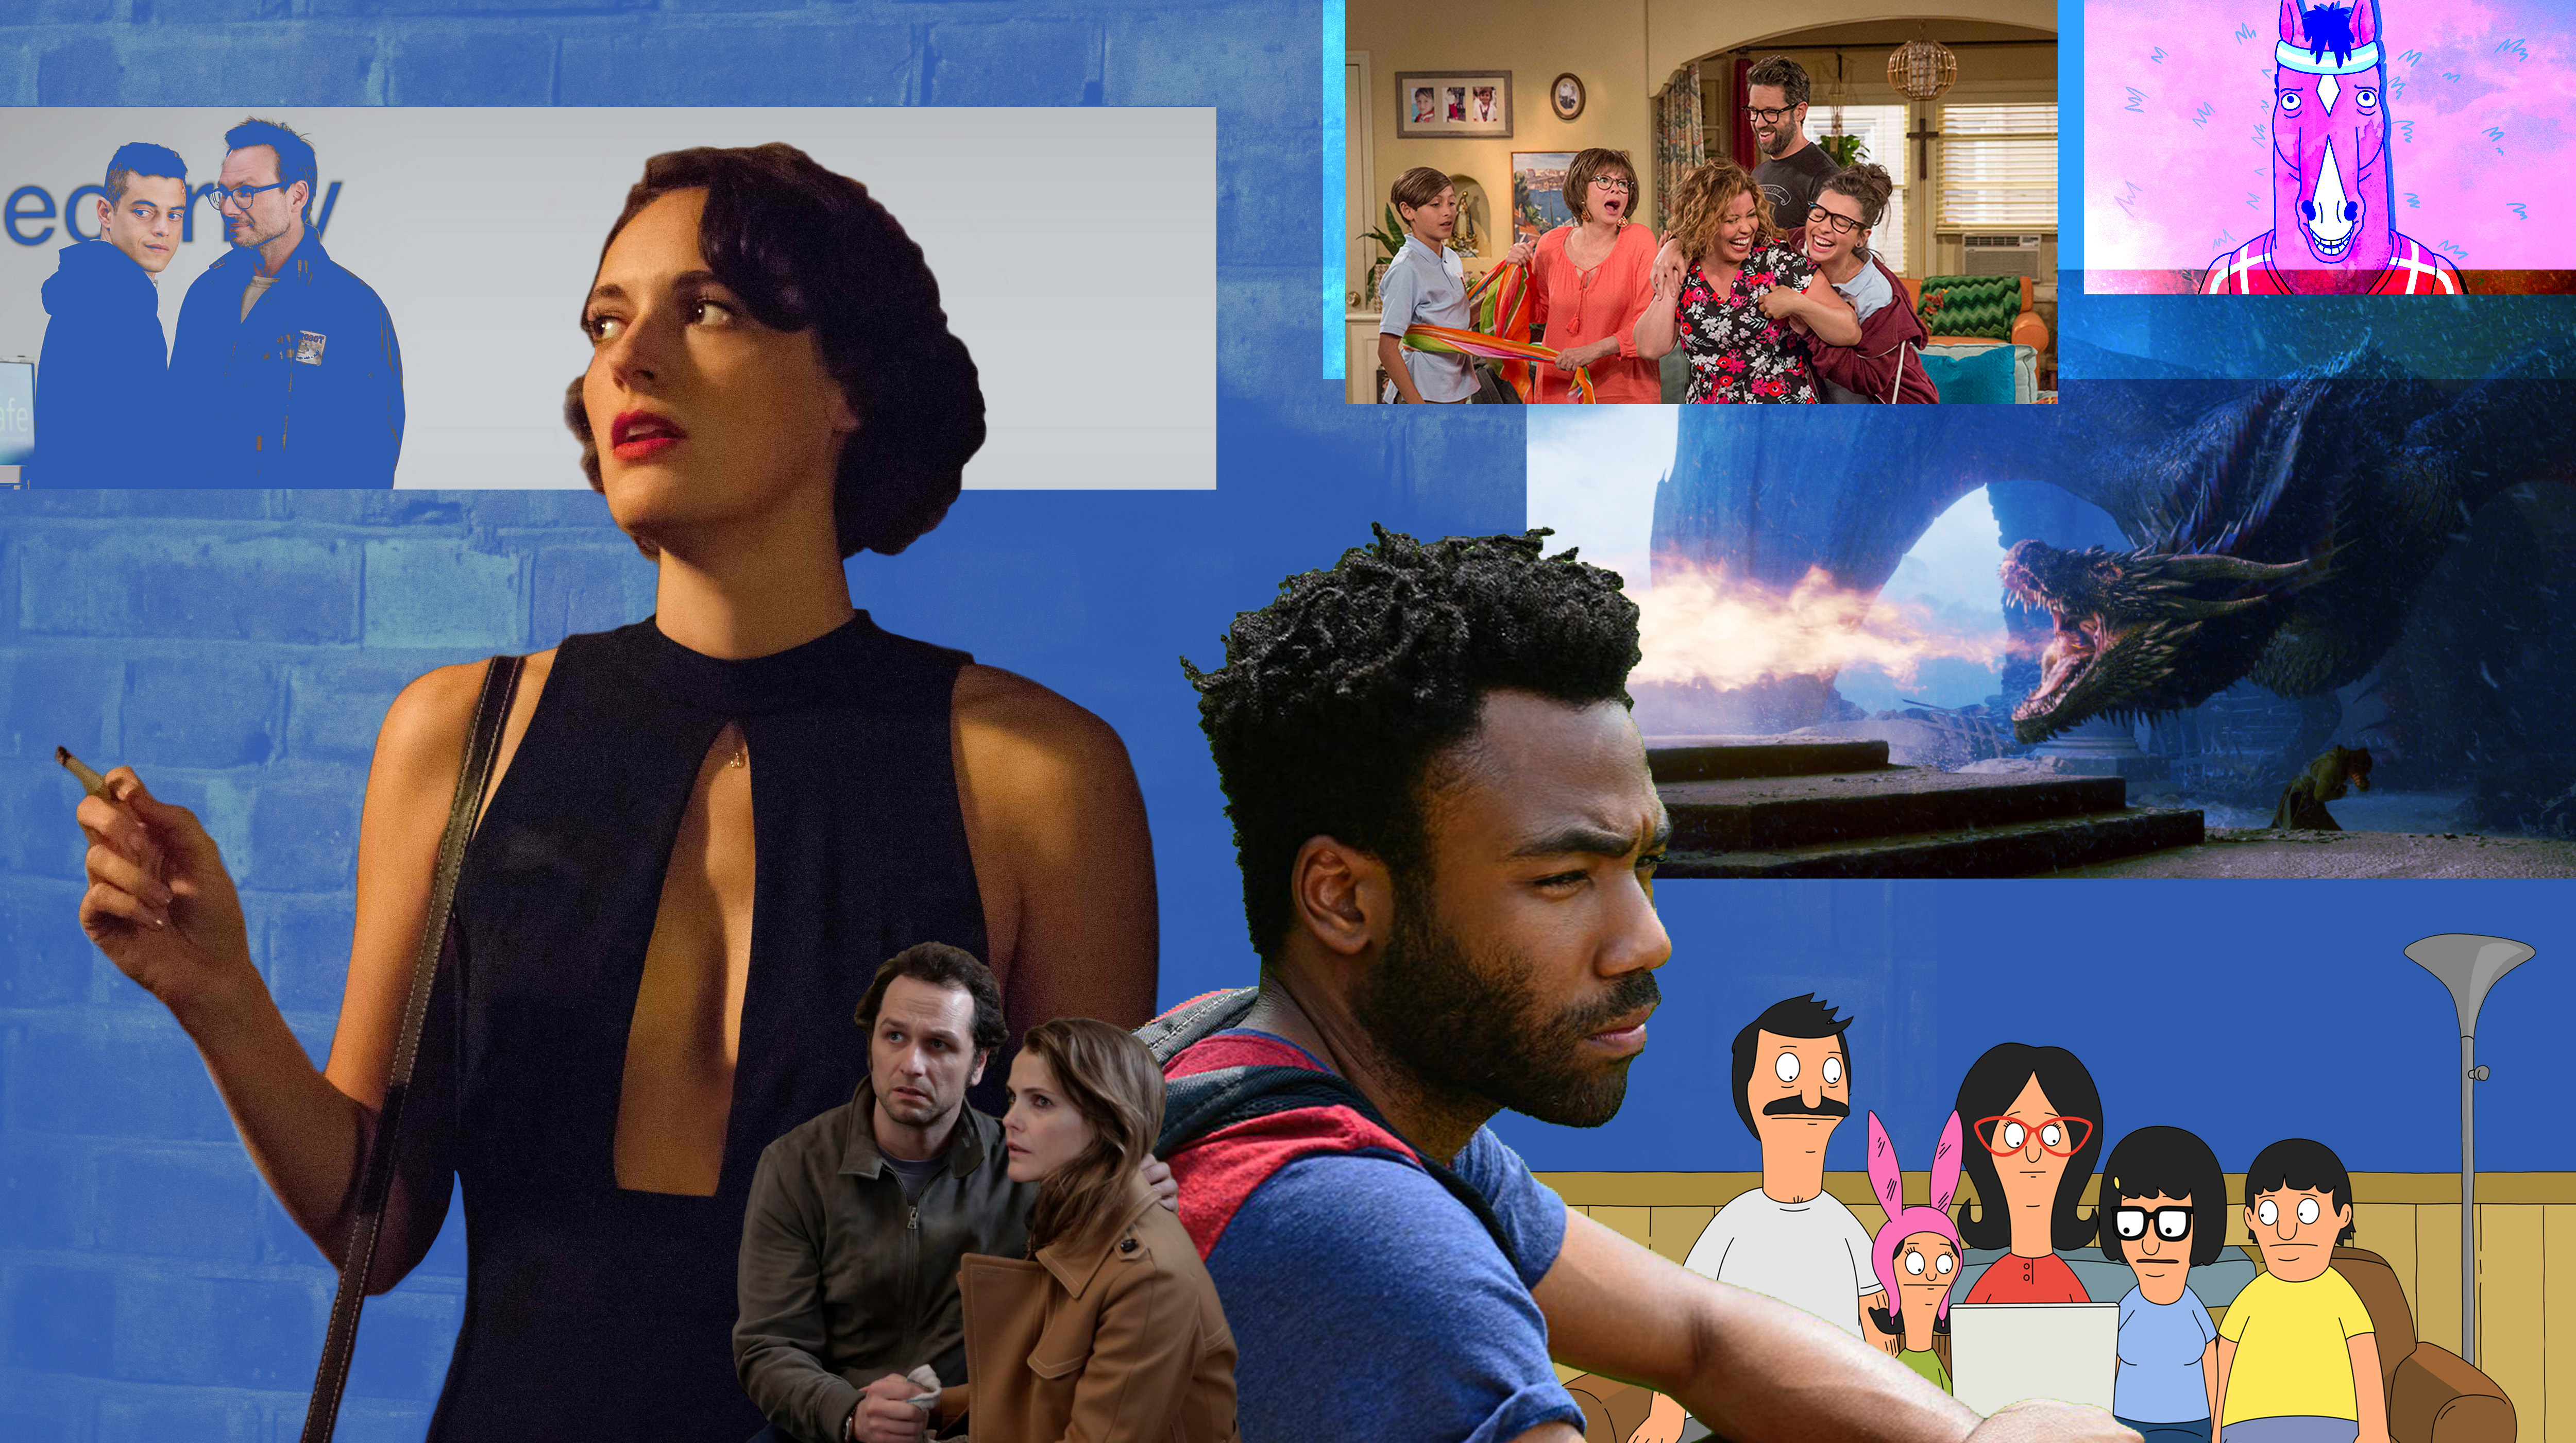 The best TV shows of the 2010s included Fleabag and Atlanta.